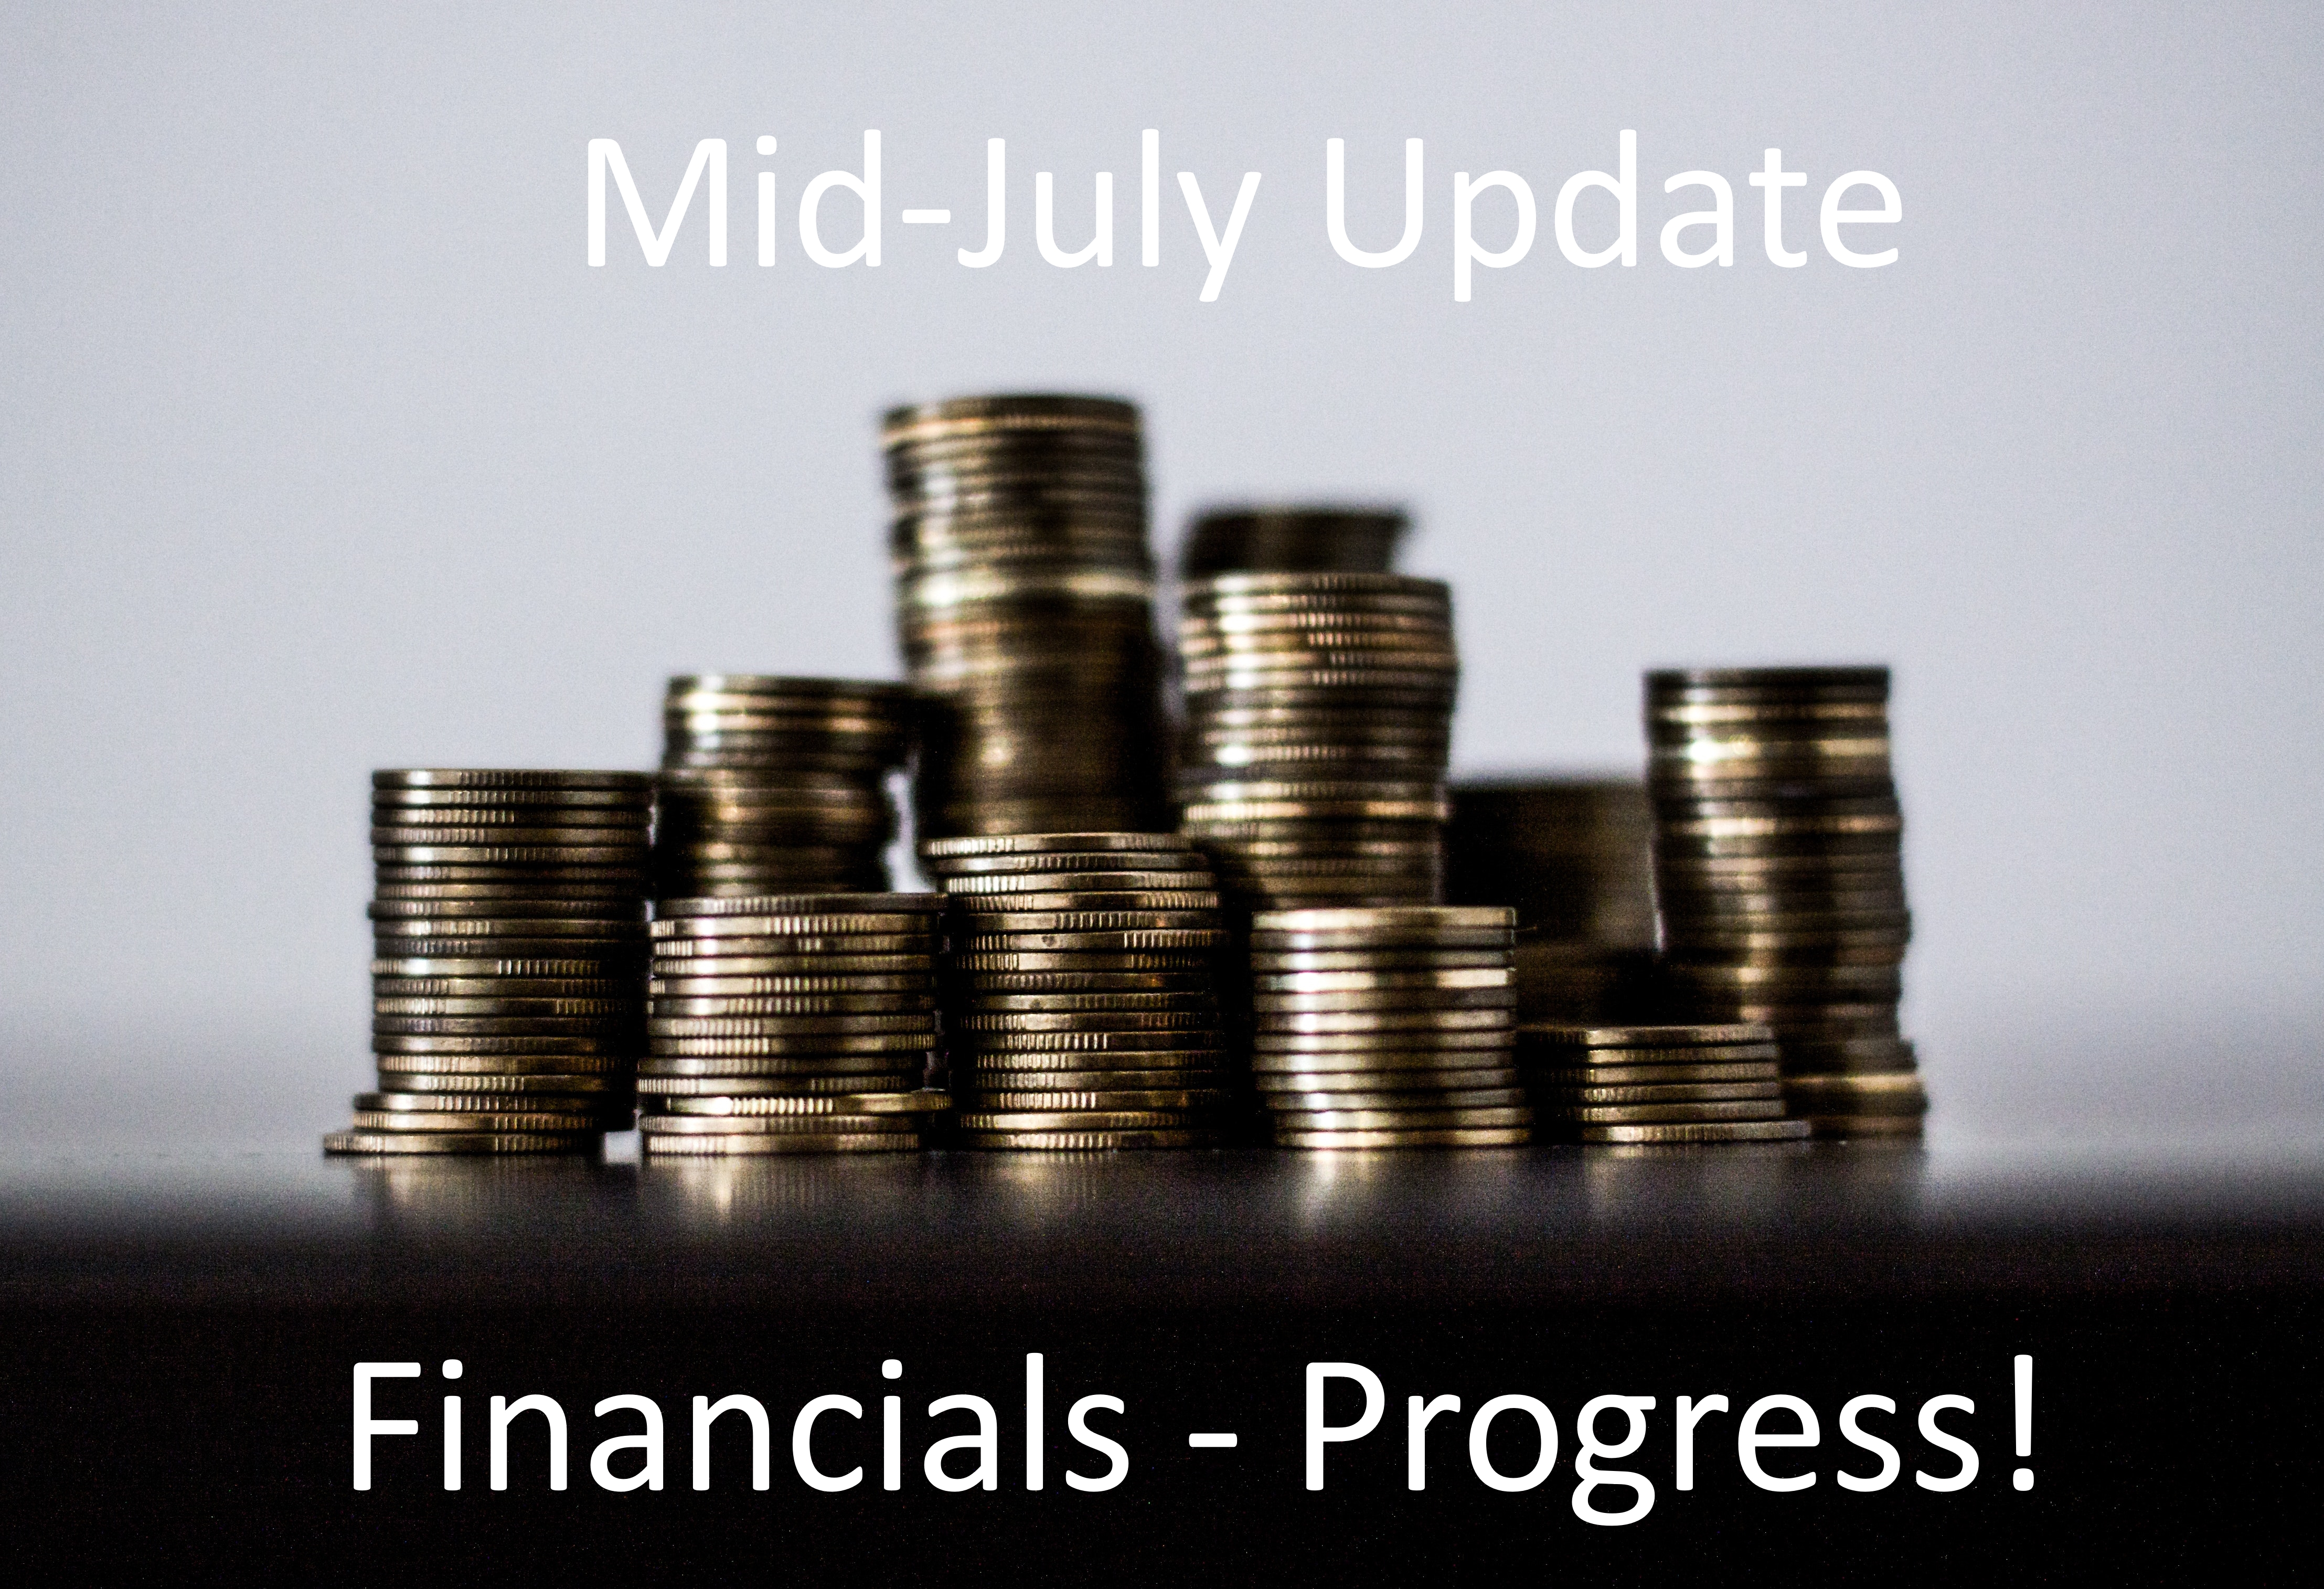 Financial Update: Mid-July 2018 – Progress!